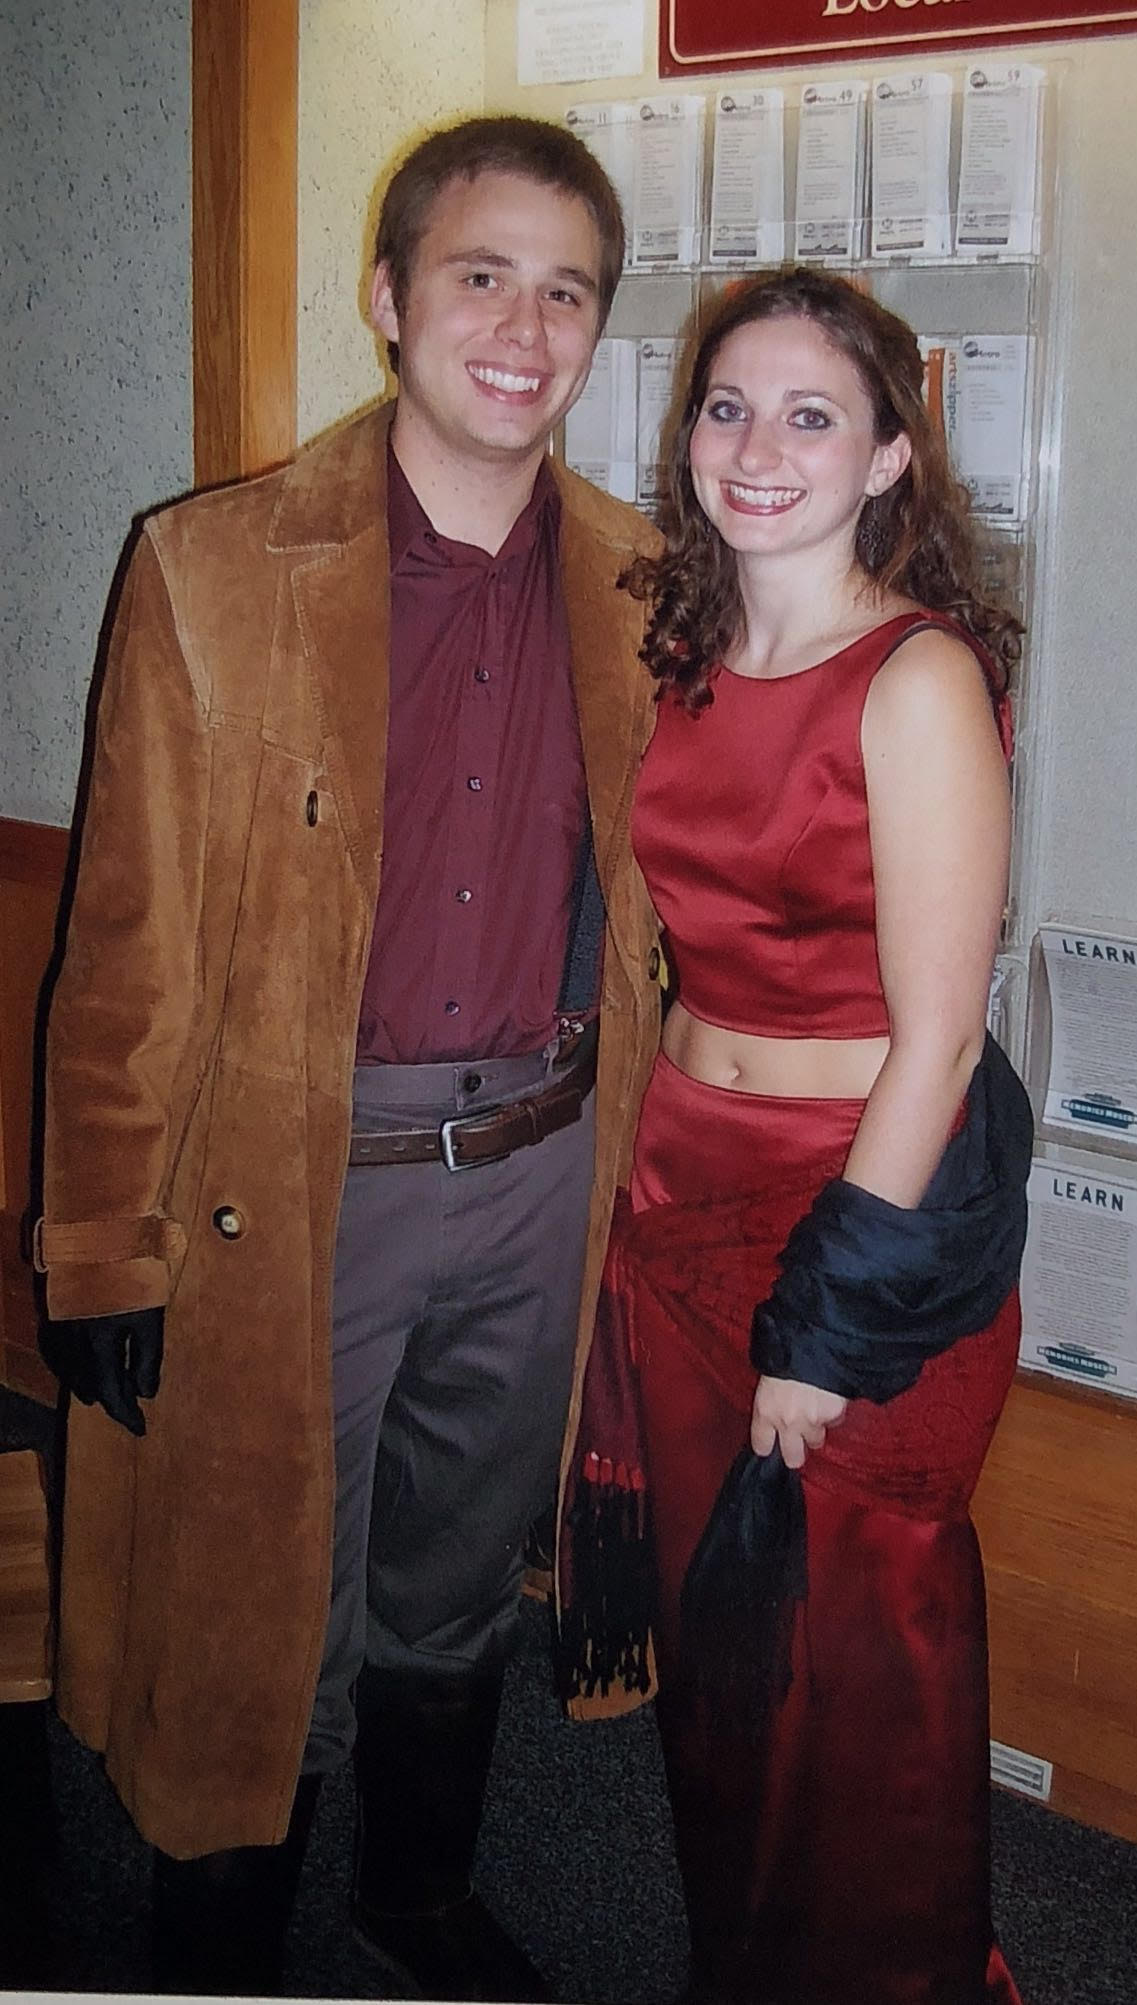 Katelyn and I in our first-ever couples costume, Mal and Inara